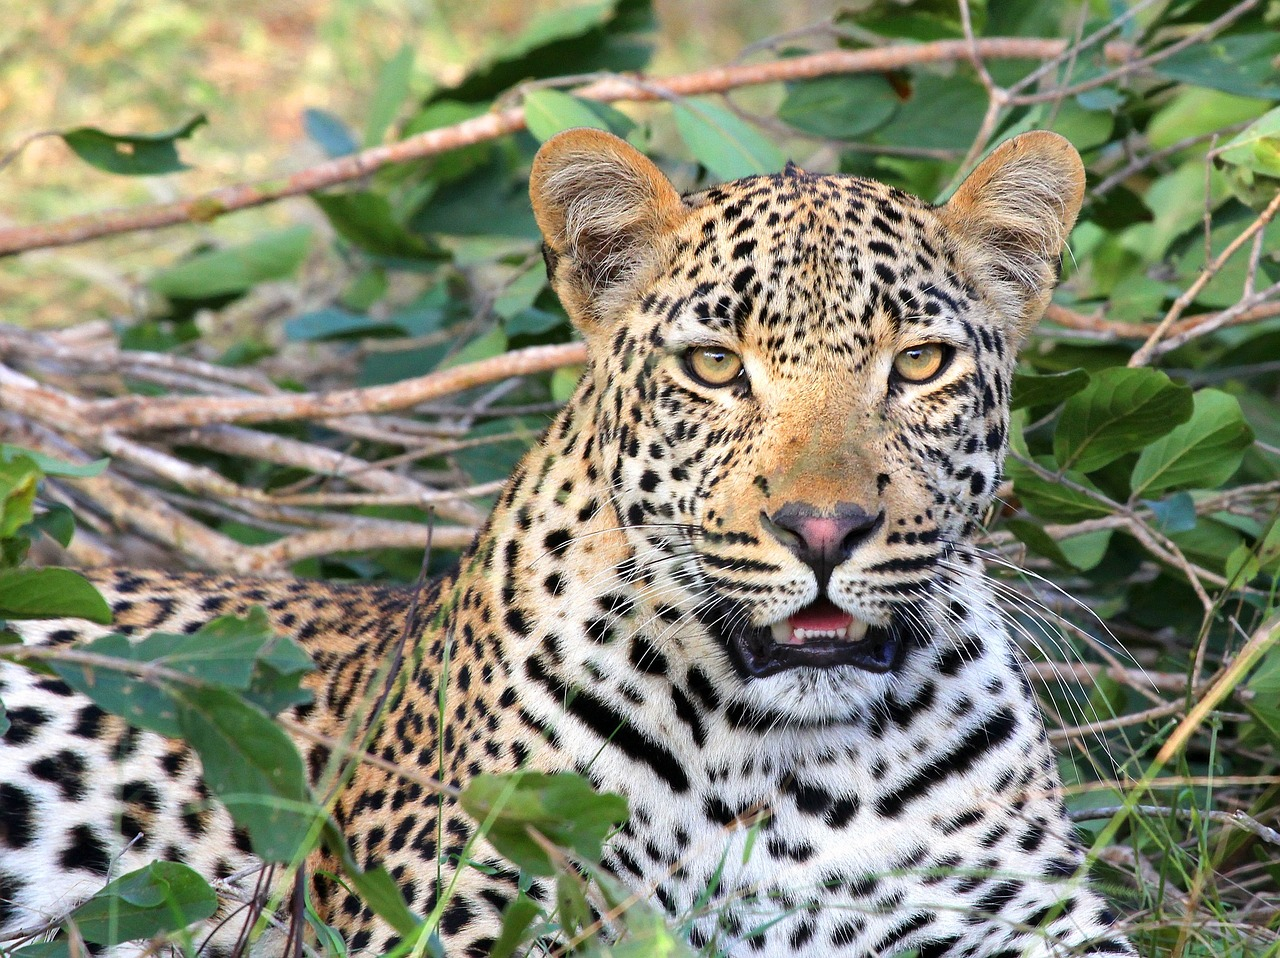 Is Environment Ministry Being Honest About Leopard Poaching Numbers?